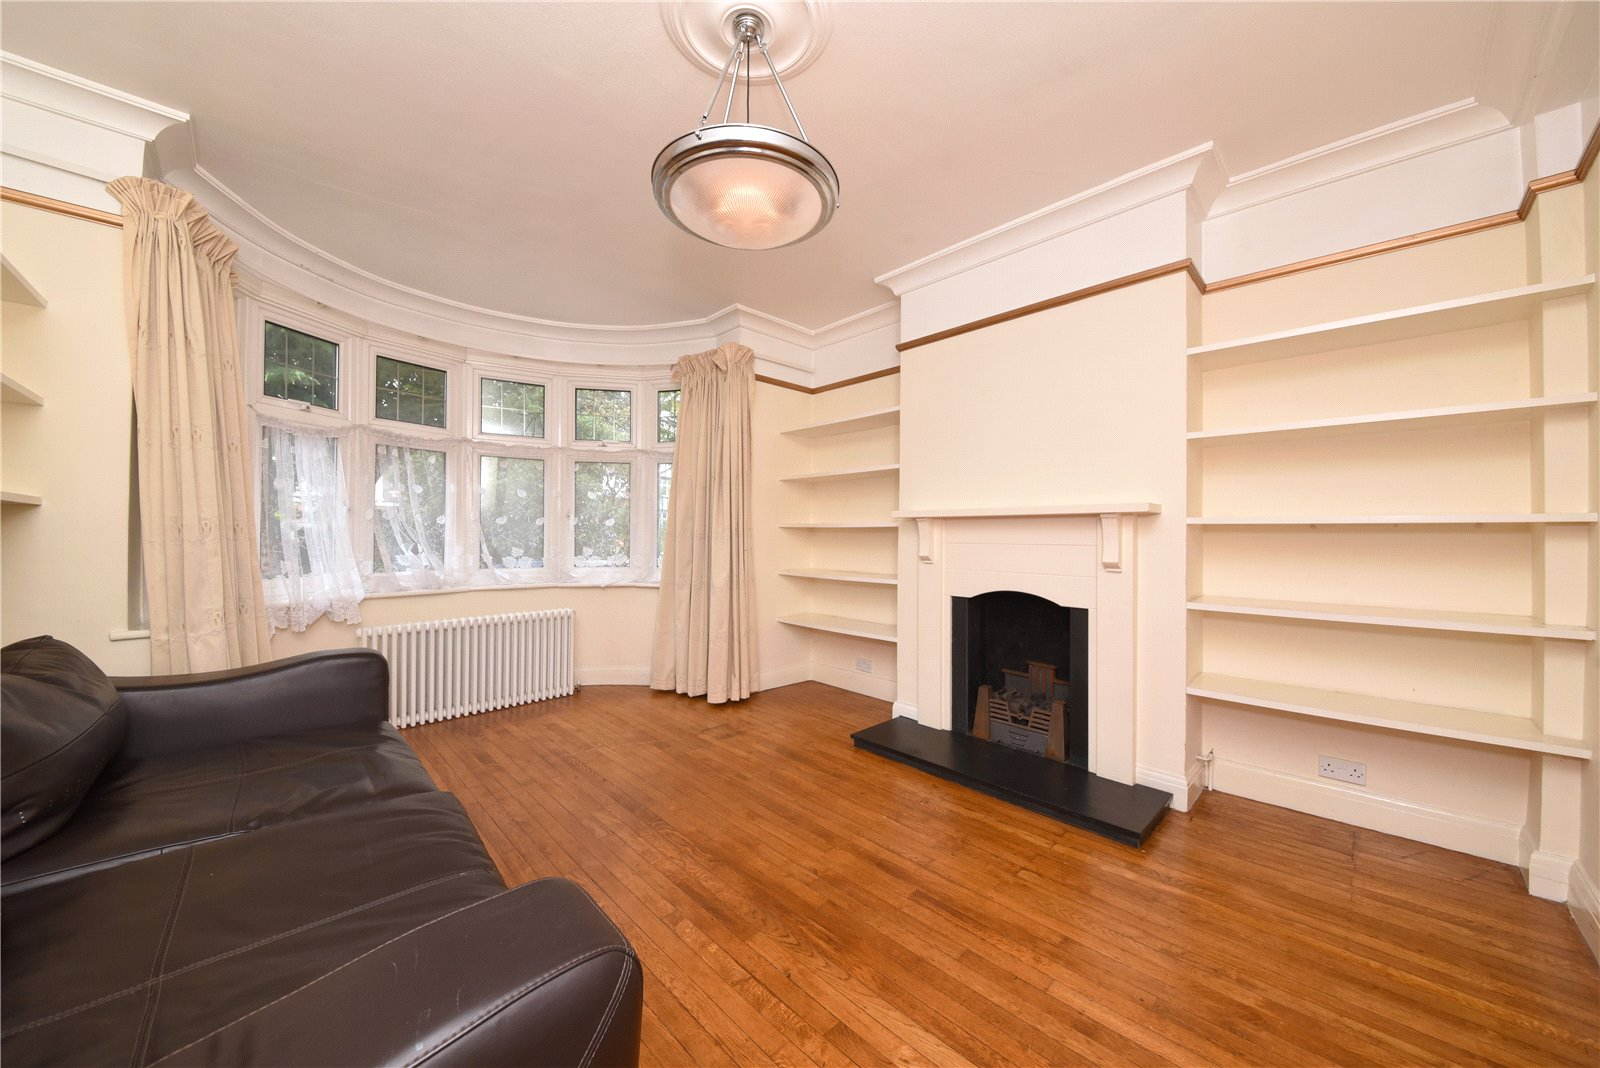 4 bed house to rent in Longland Drive, Totteridge 2